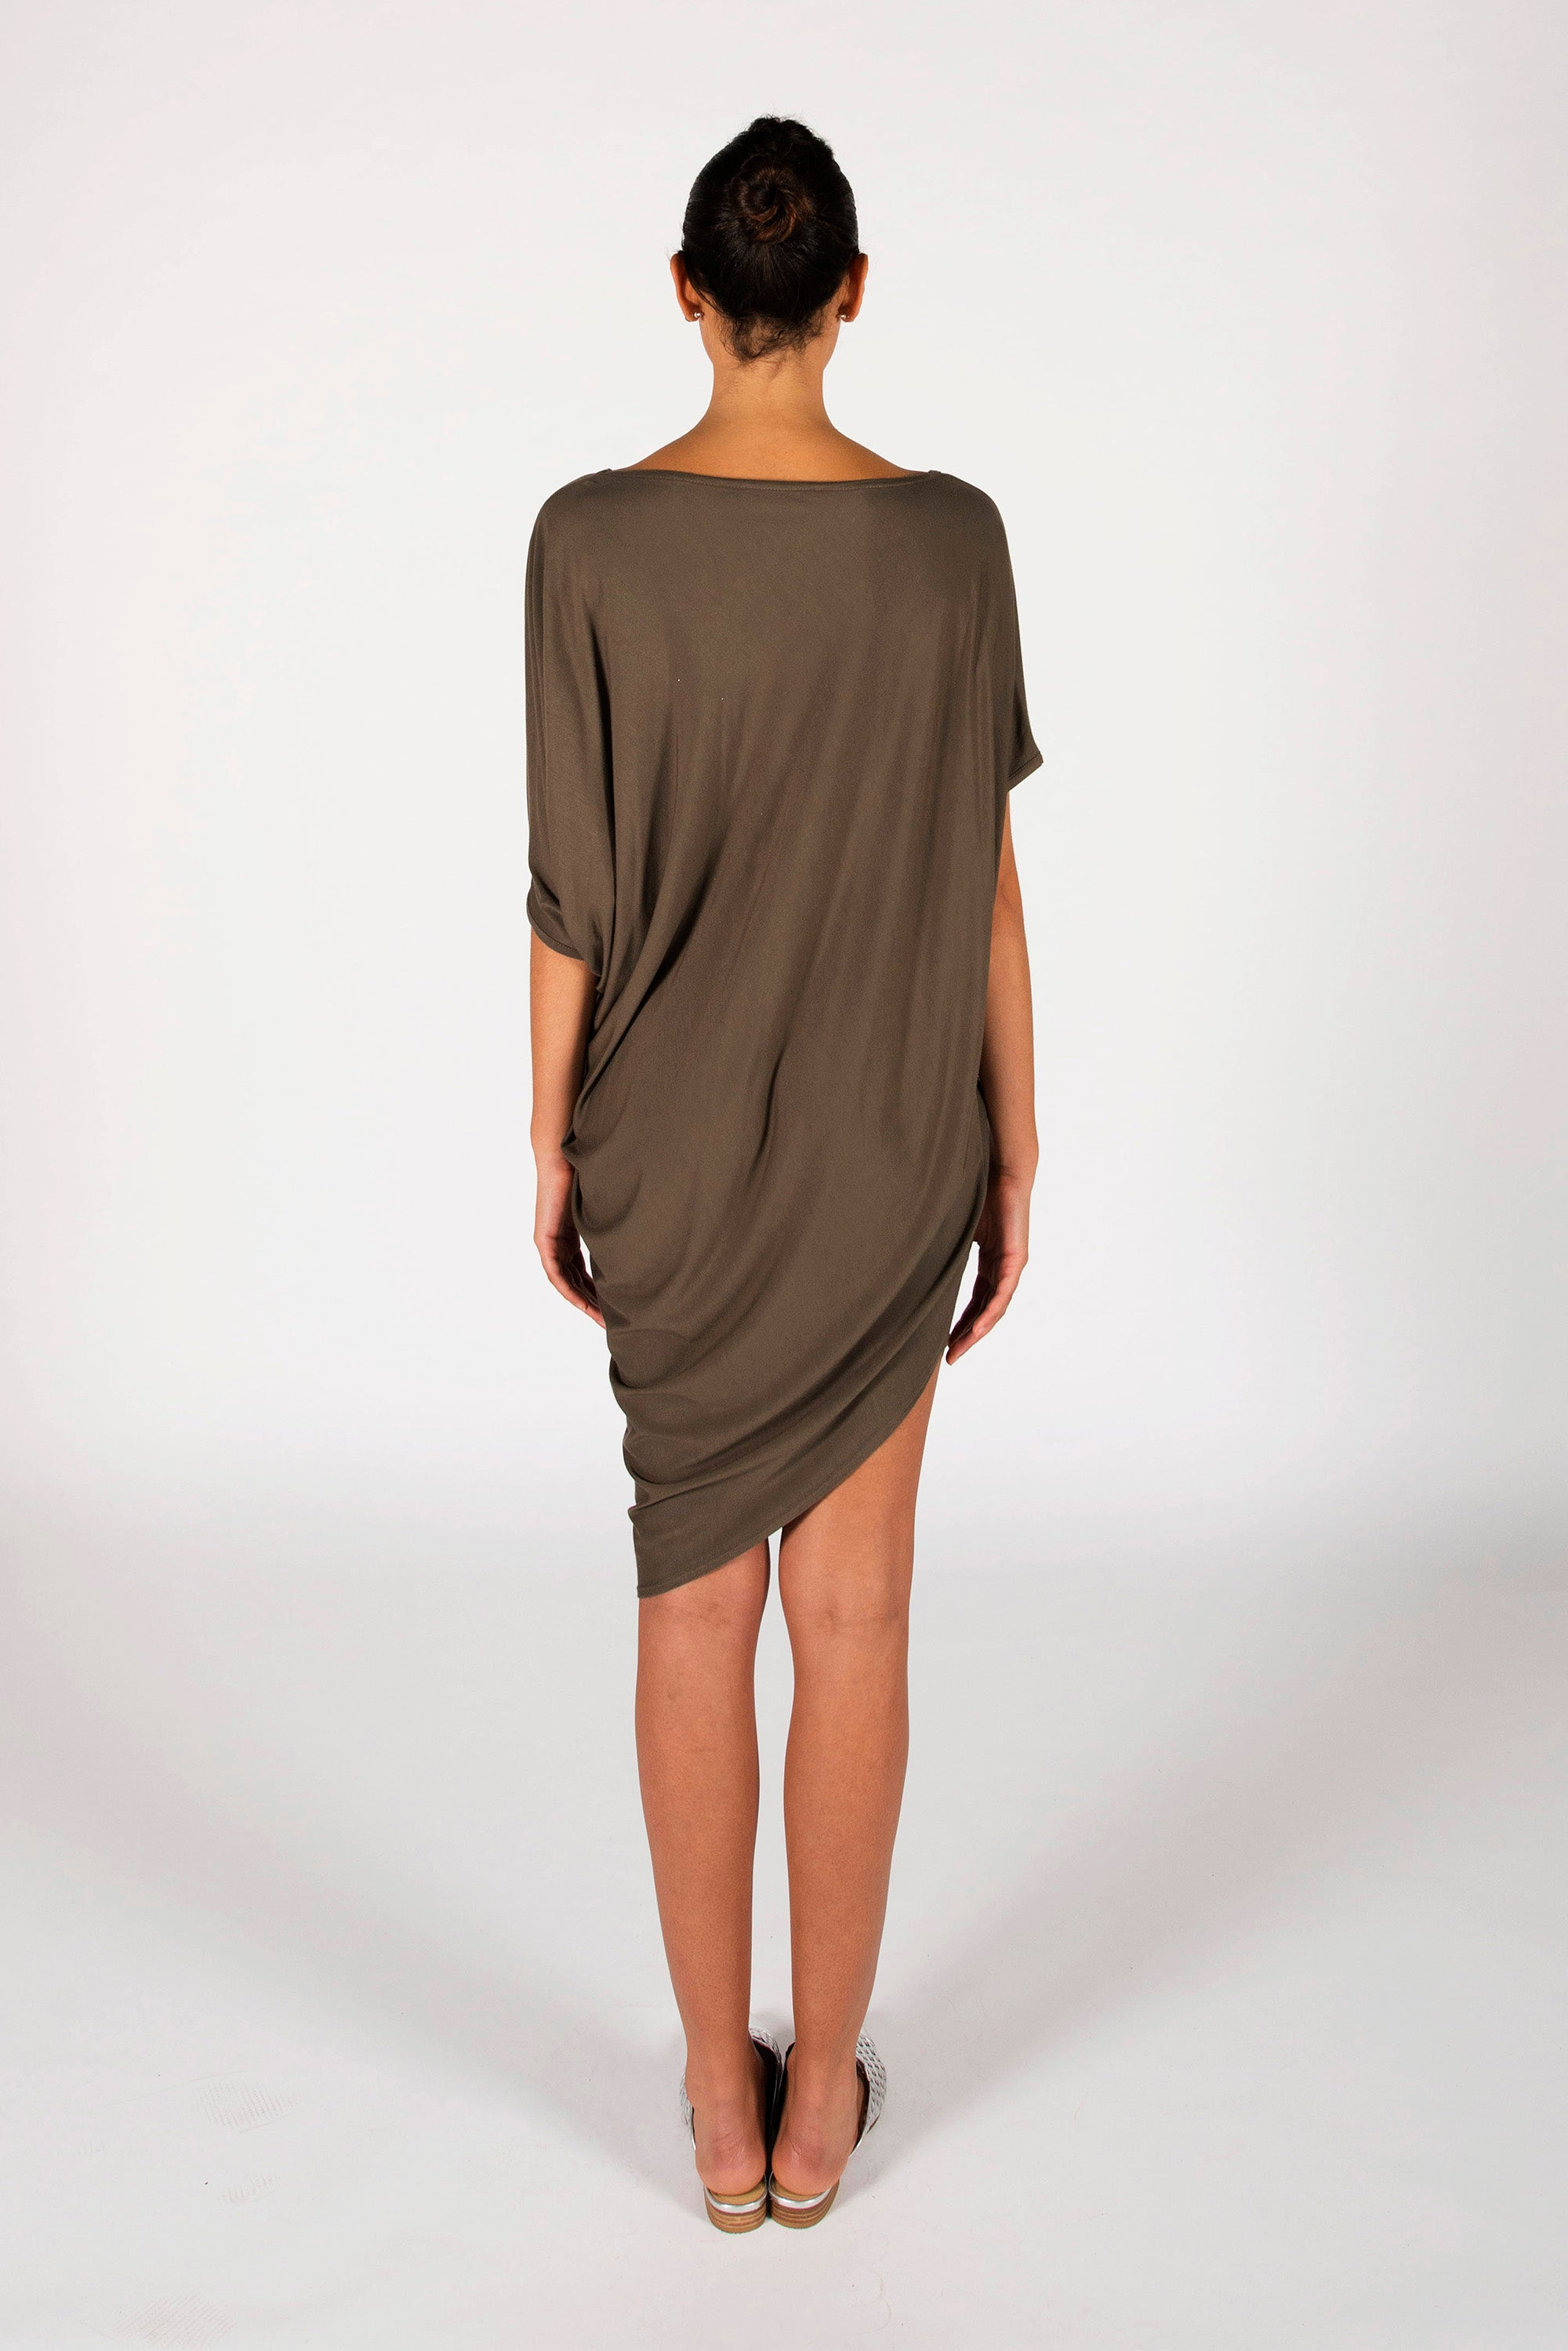 : the olive KITTY dress